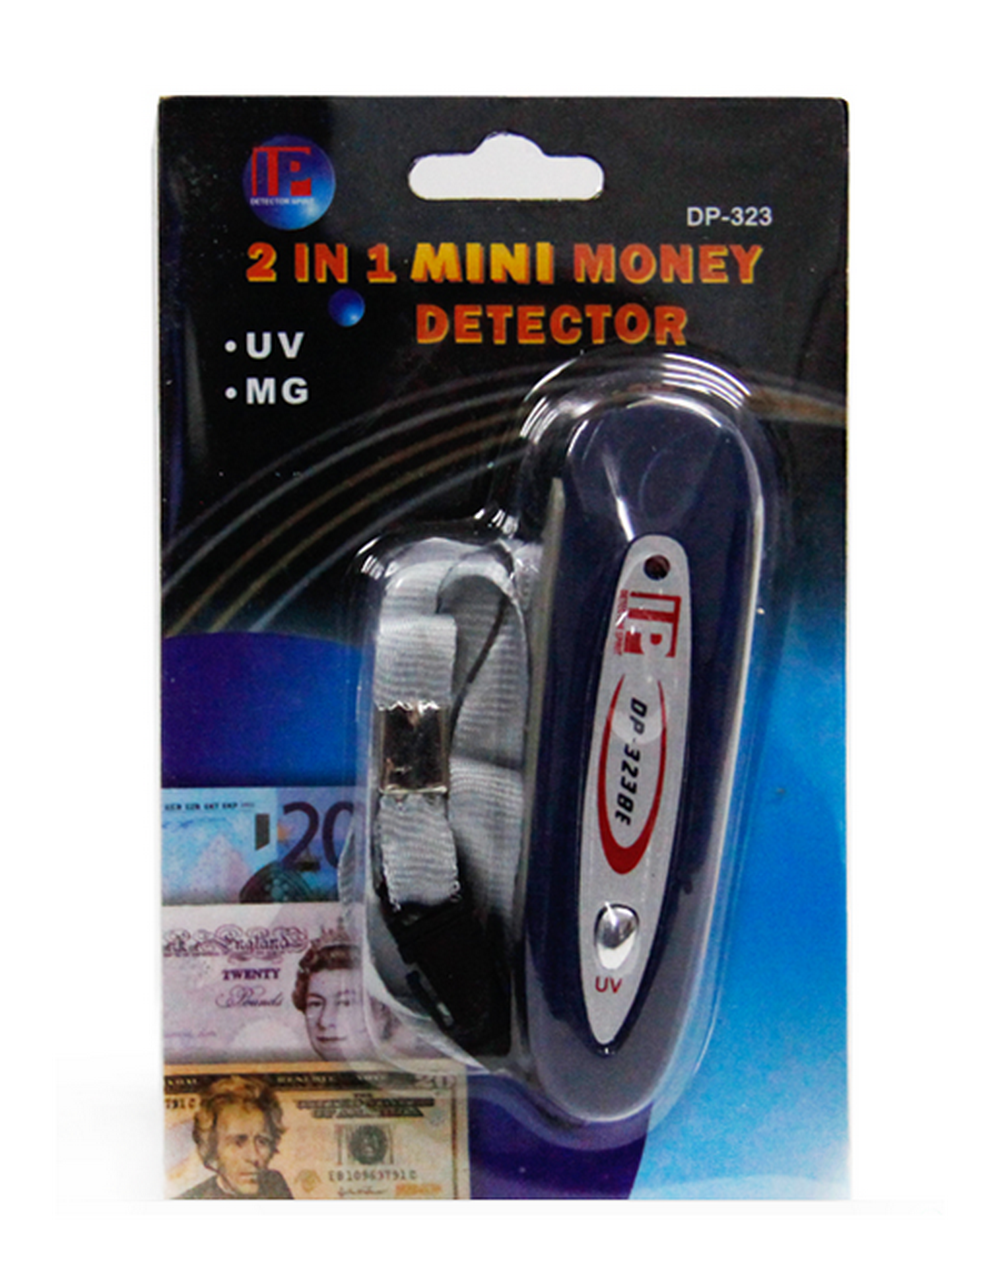 2 in 1 Counterfeit Money UV Detector Tester Dollar Bill Fake Euro Currency Checker